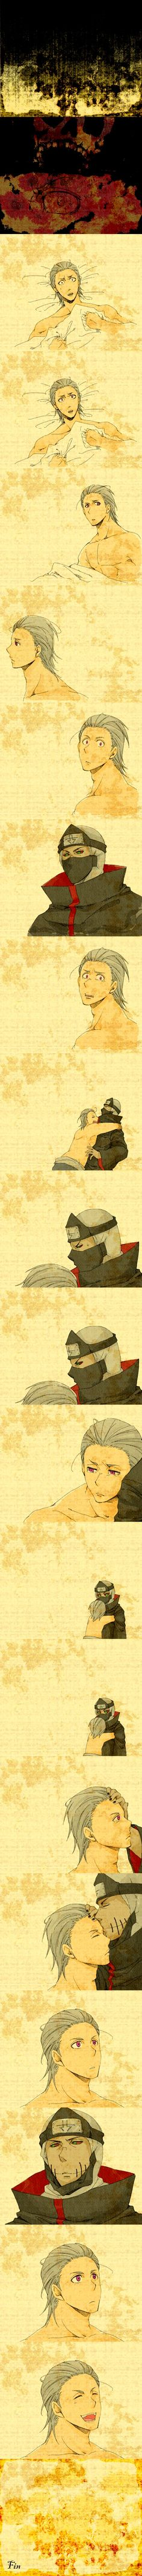 Hidan and Kakuzu - Cute!